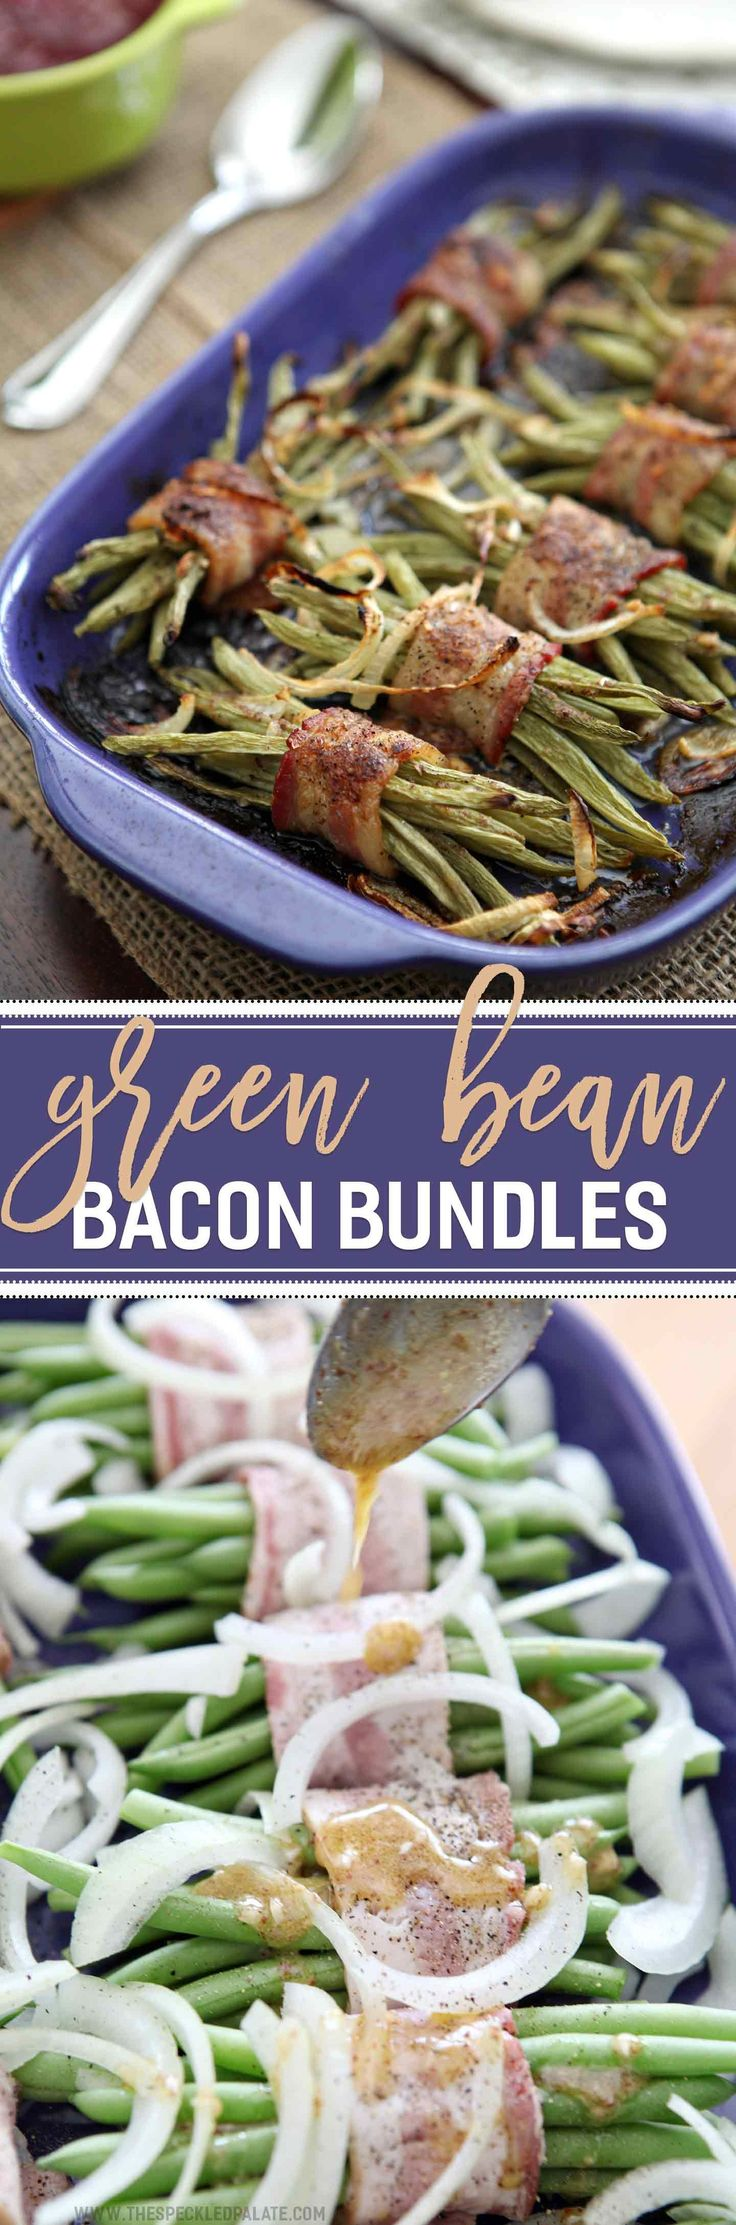 Green Bean Bacon Bundles make the BEST fresh Thanksgiving side dish! Wrap small bundles of fresh green beans in strip of bacon. Whip up a homemade mustard vinaigrette, then brush the green bean bundles with the vinaigrette. Bake this side dish until the bacon has cooked through. These Green Bean Bacon Bundles are sure to be a winner at this year's Thanksgiving table!